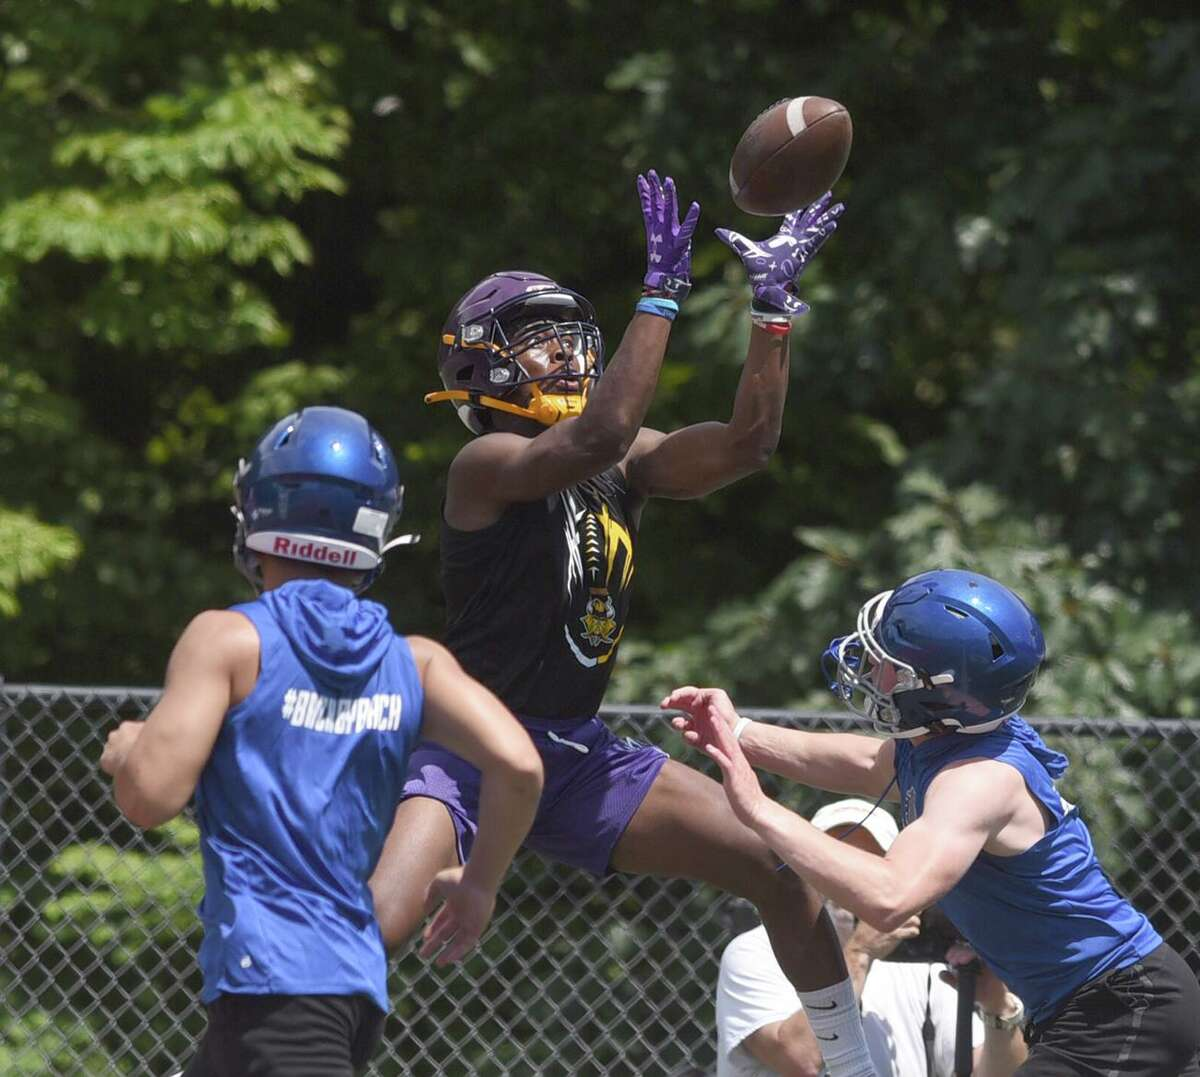 Westhill's David Moody goes up to catch a pass during day one of the Grip It and Rip It football tournament in New Canaan on Friday, July 9, 2021.